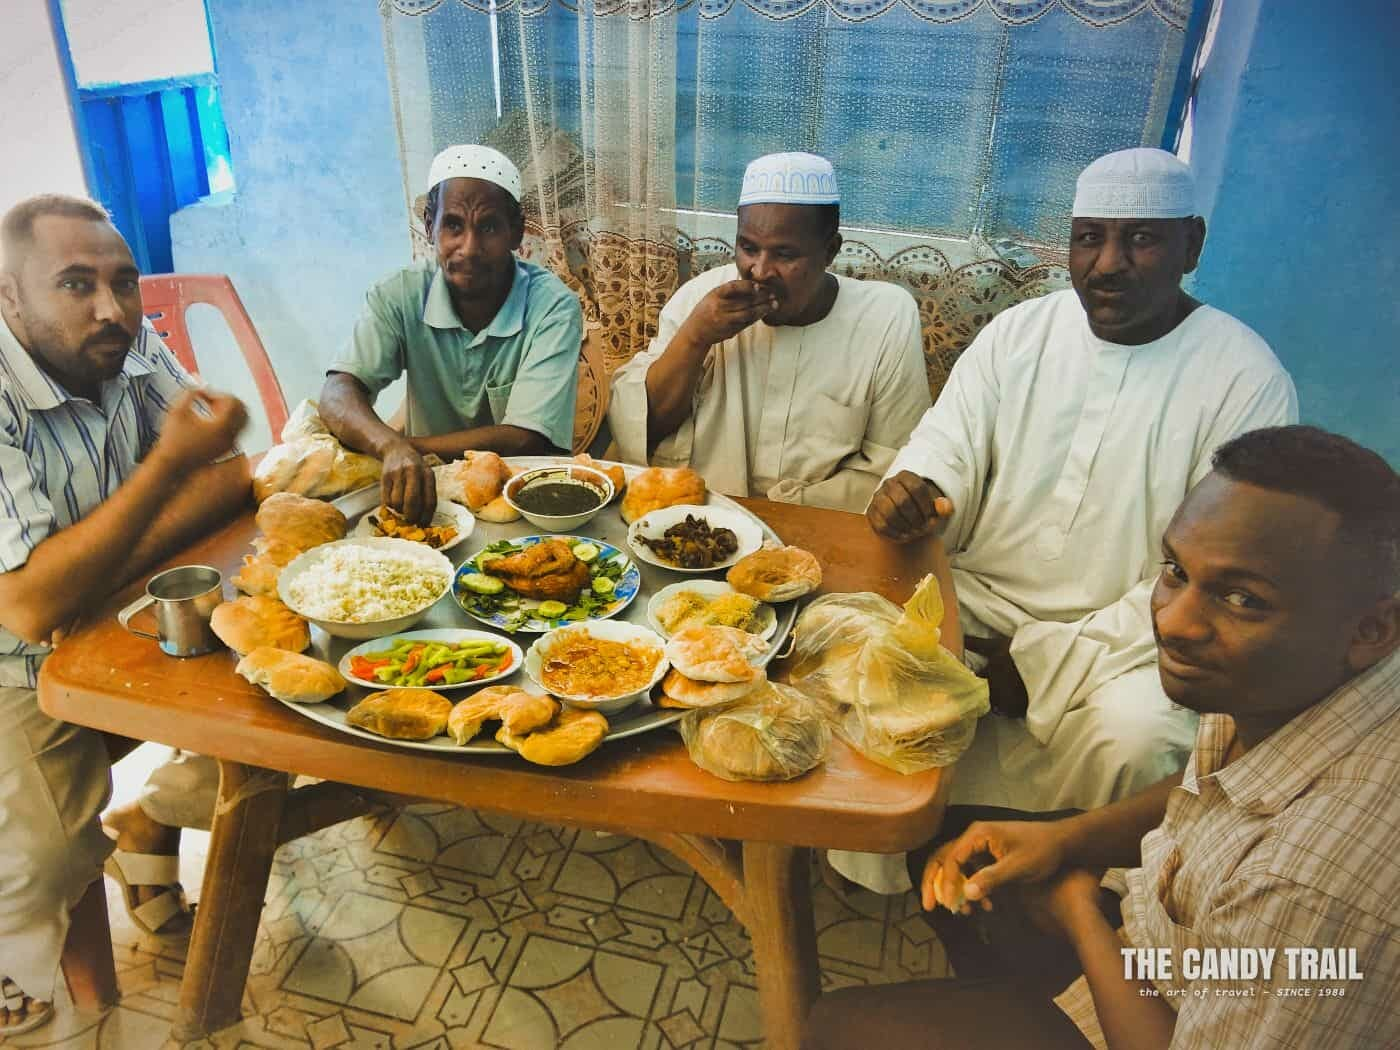 men at wedding reception meal in  dongola sudan